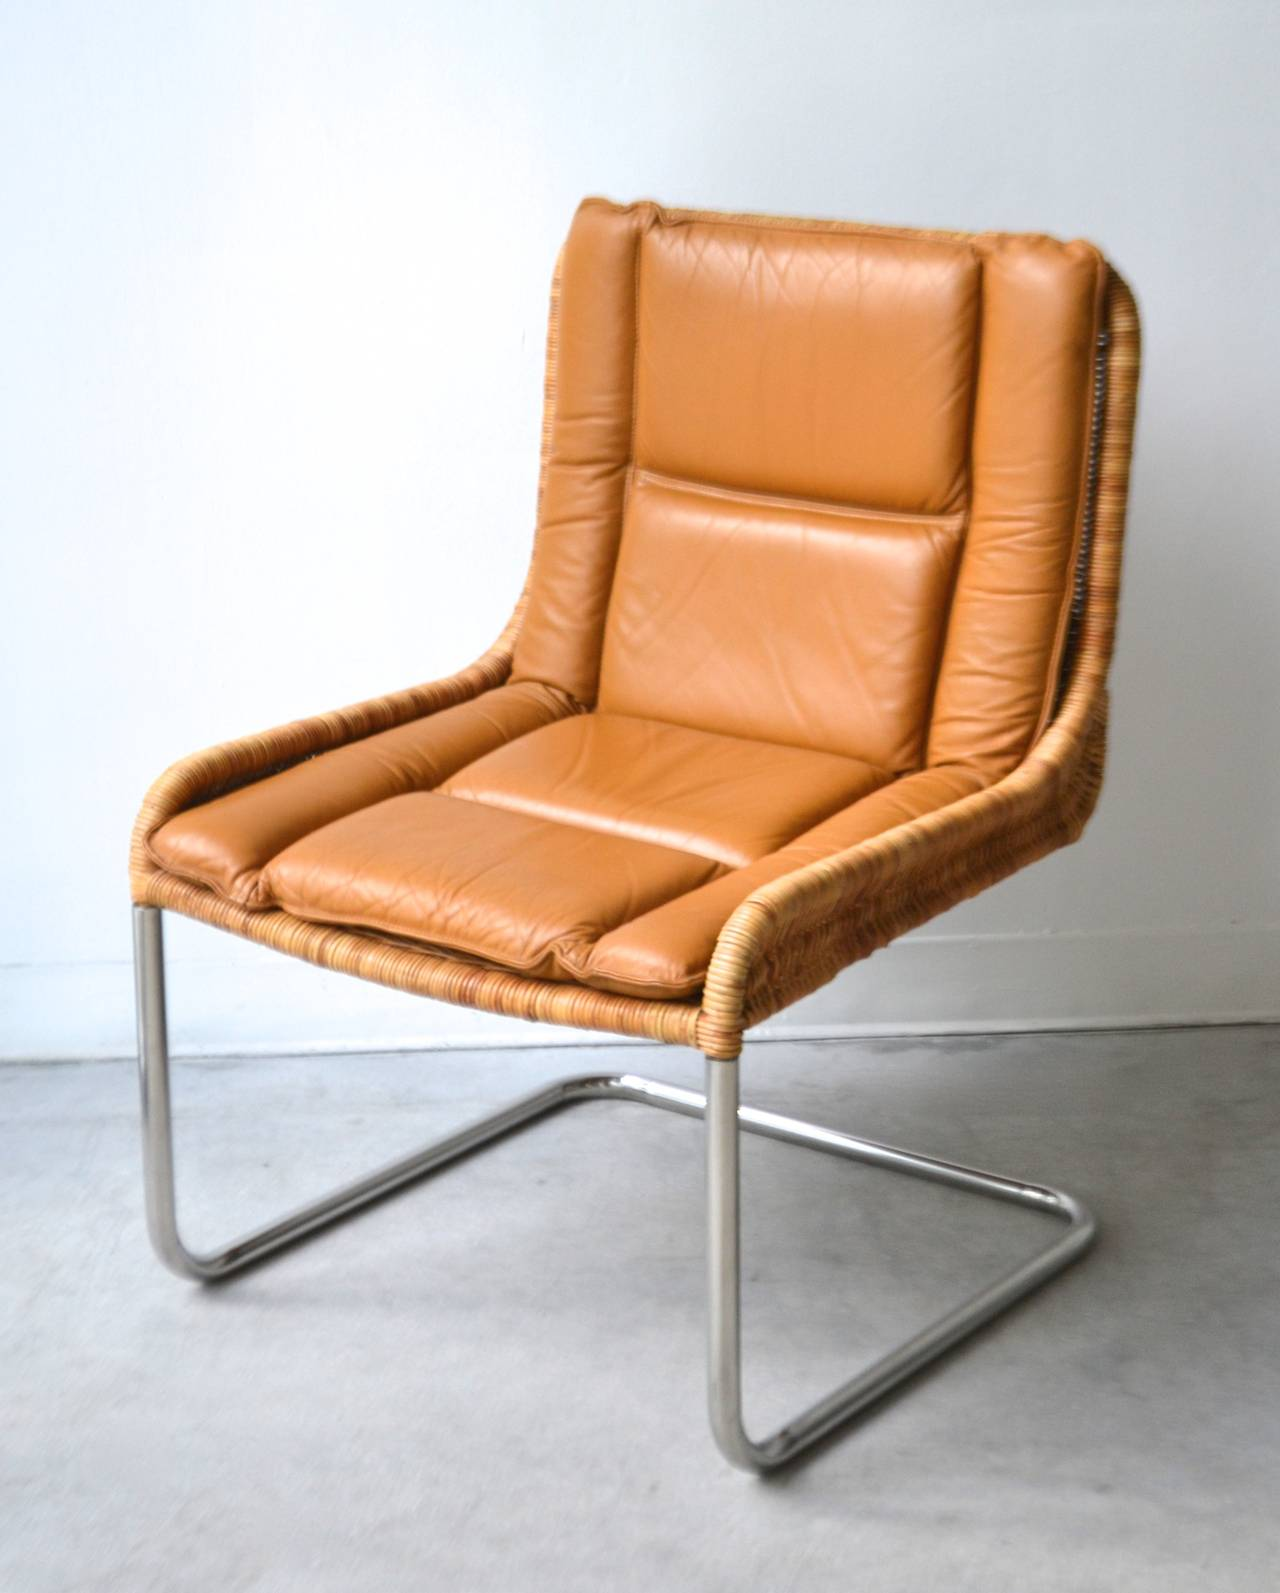 Woven Rattan and Leather Occasional Chair Side Chair at